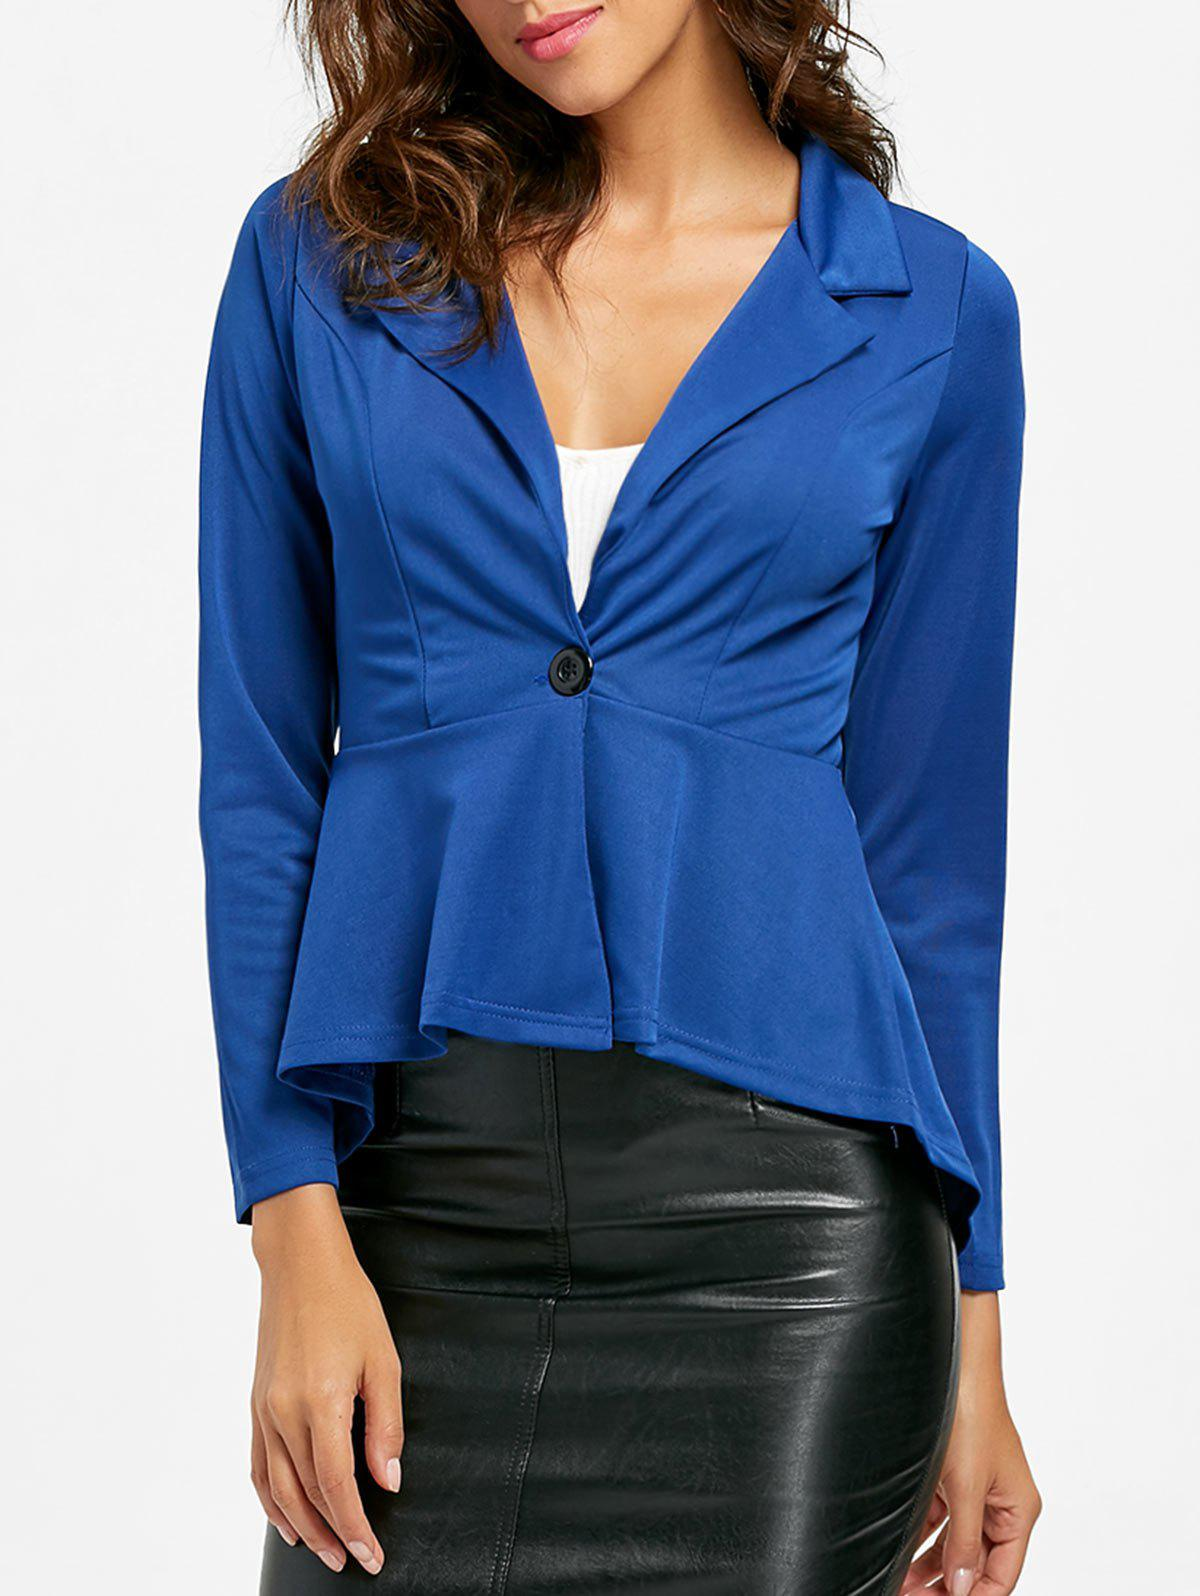 Flounce High Low One Button Blazer - Bleu M